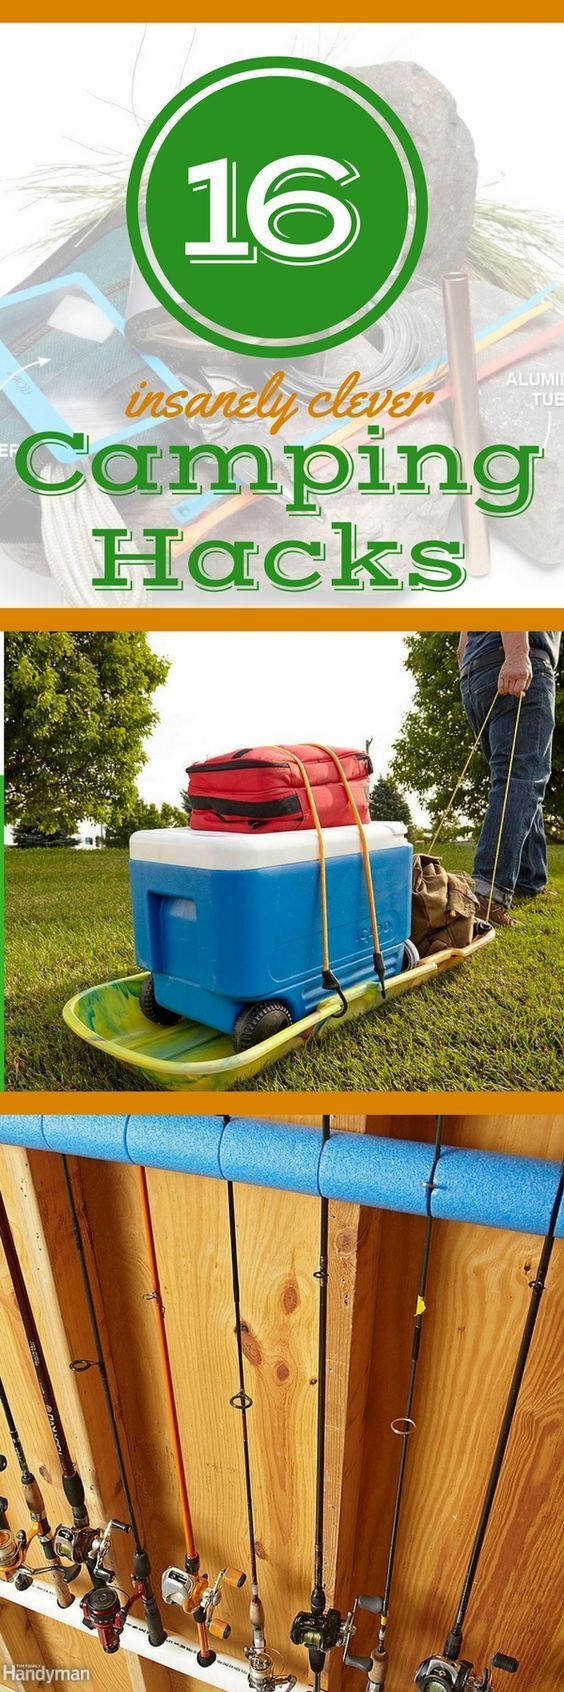 17 Camping Hacks, Tips, & Tricks You'll Wish You Knew Earlier: Hack your camping trips with these clever camping ideas, tips, and tricks. These fun camping ideas take your outdoor adventures to the next level. Plus: discover storage ideas for camping equipment you'll wish you'd been using all along.